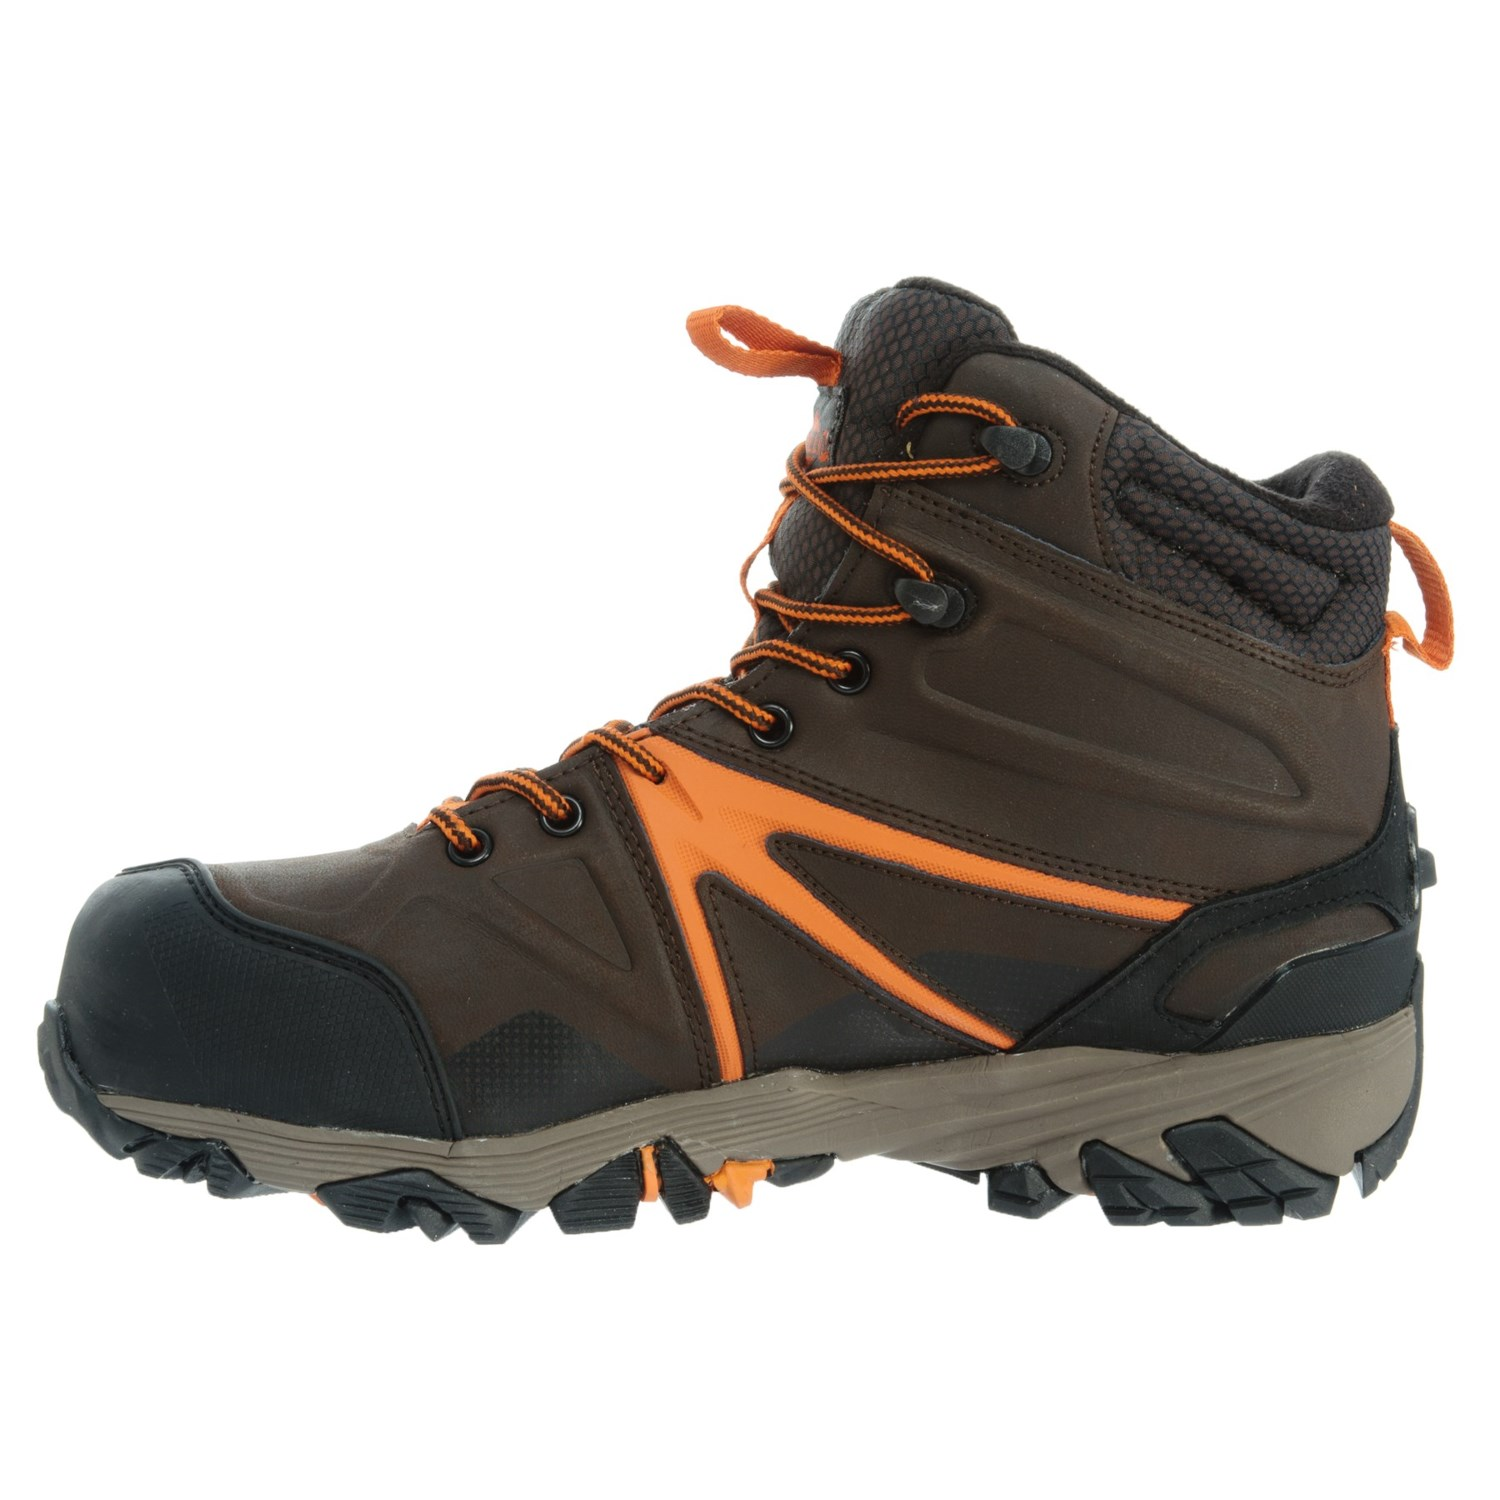 Merrell Trailwork Mid Work Boots (For Men) - Save 44% e23f3a658